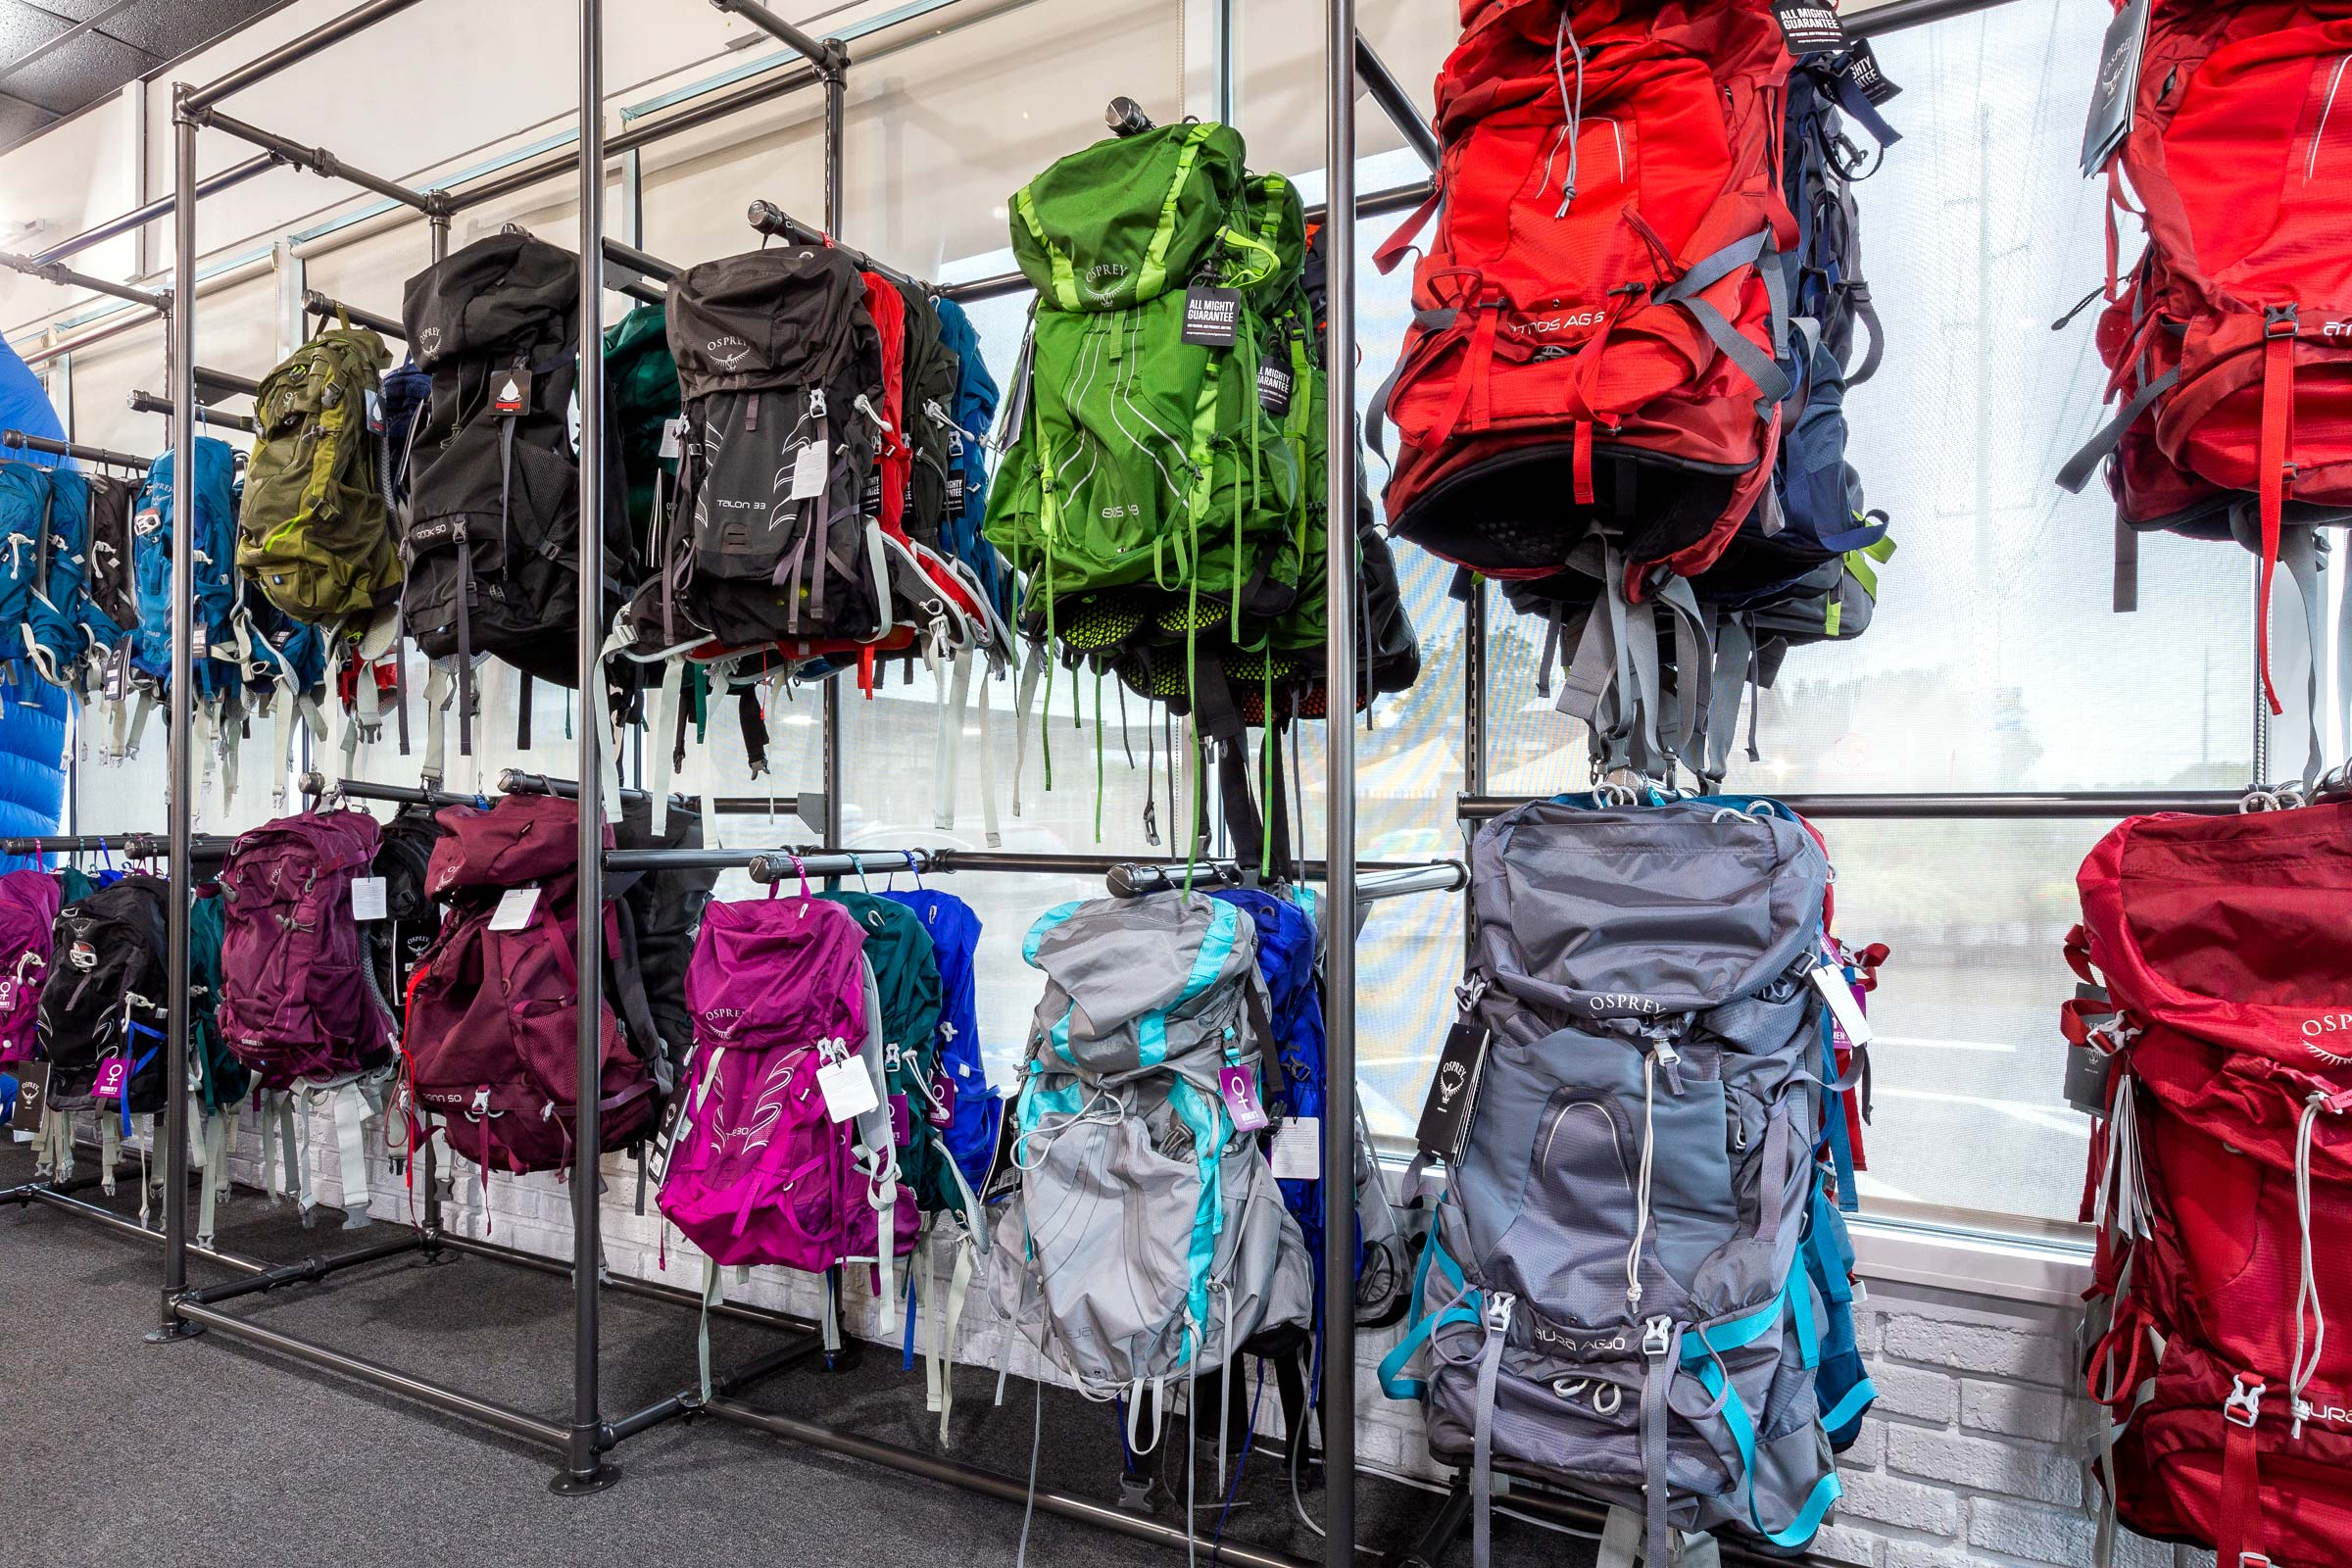 Trailful Outdoor Co is an authorized Osprey Packs dealer with a selection of top backpacks and day packs in stock